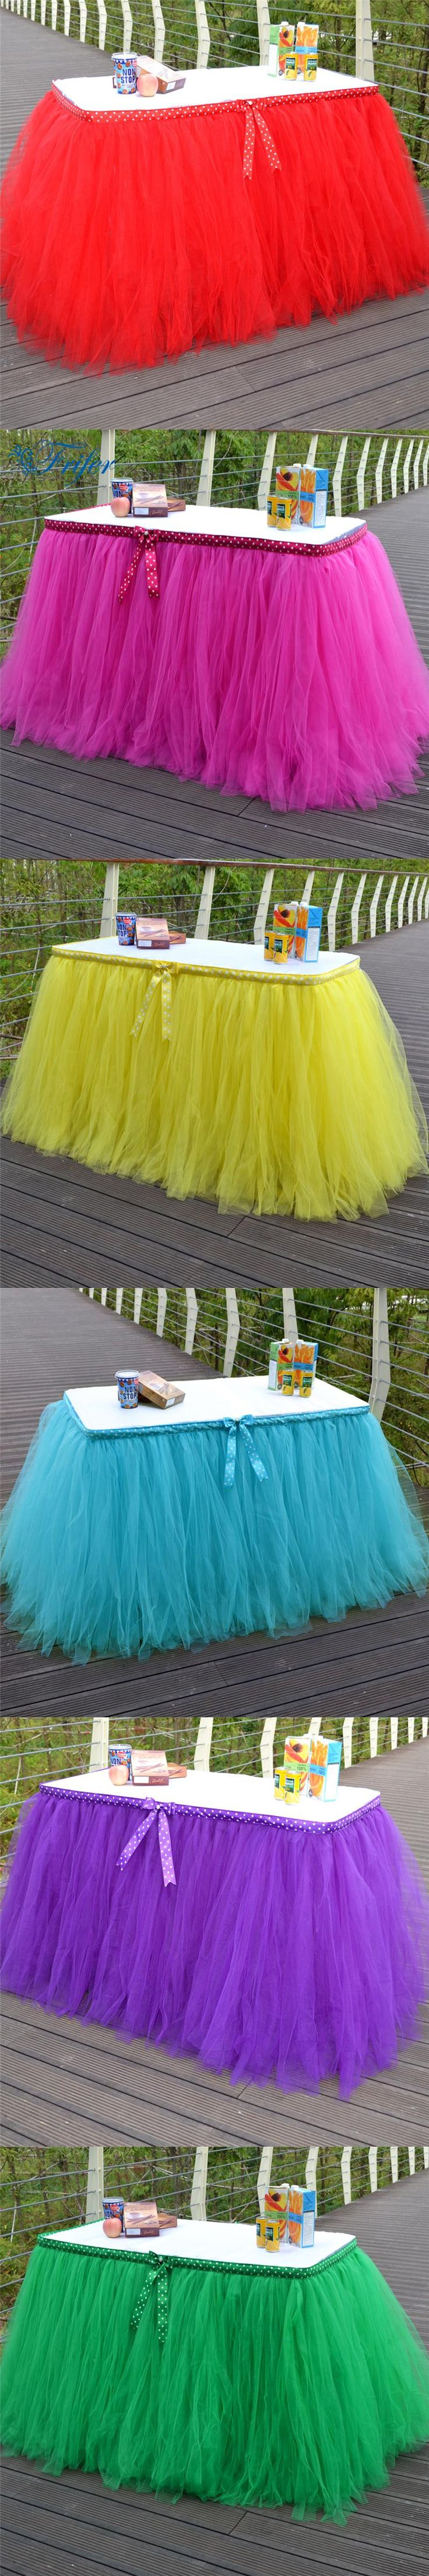 6 colors Tulle Wedding Table Skirts Decorative Handmade Table Skirting for Wedding Banquet Birthday Baby Shower Parties Decor